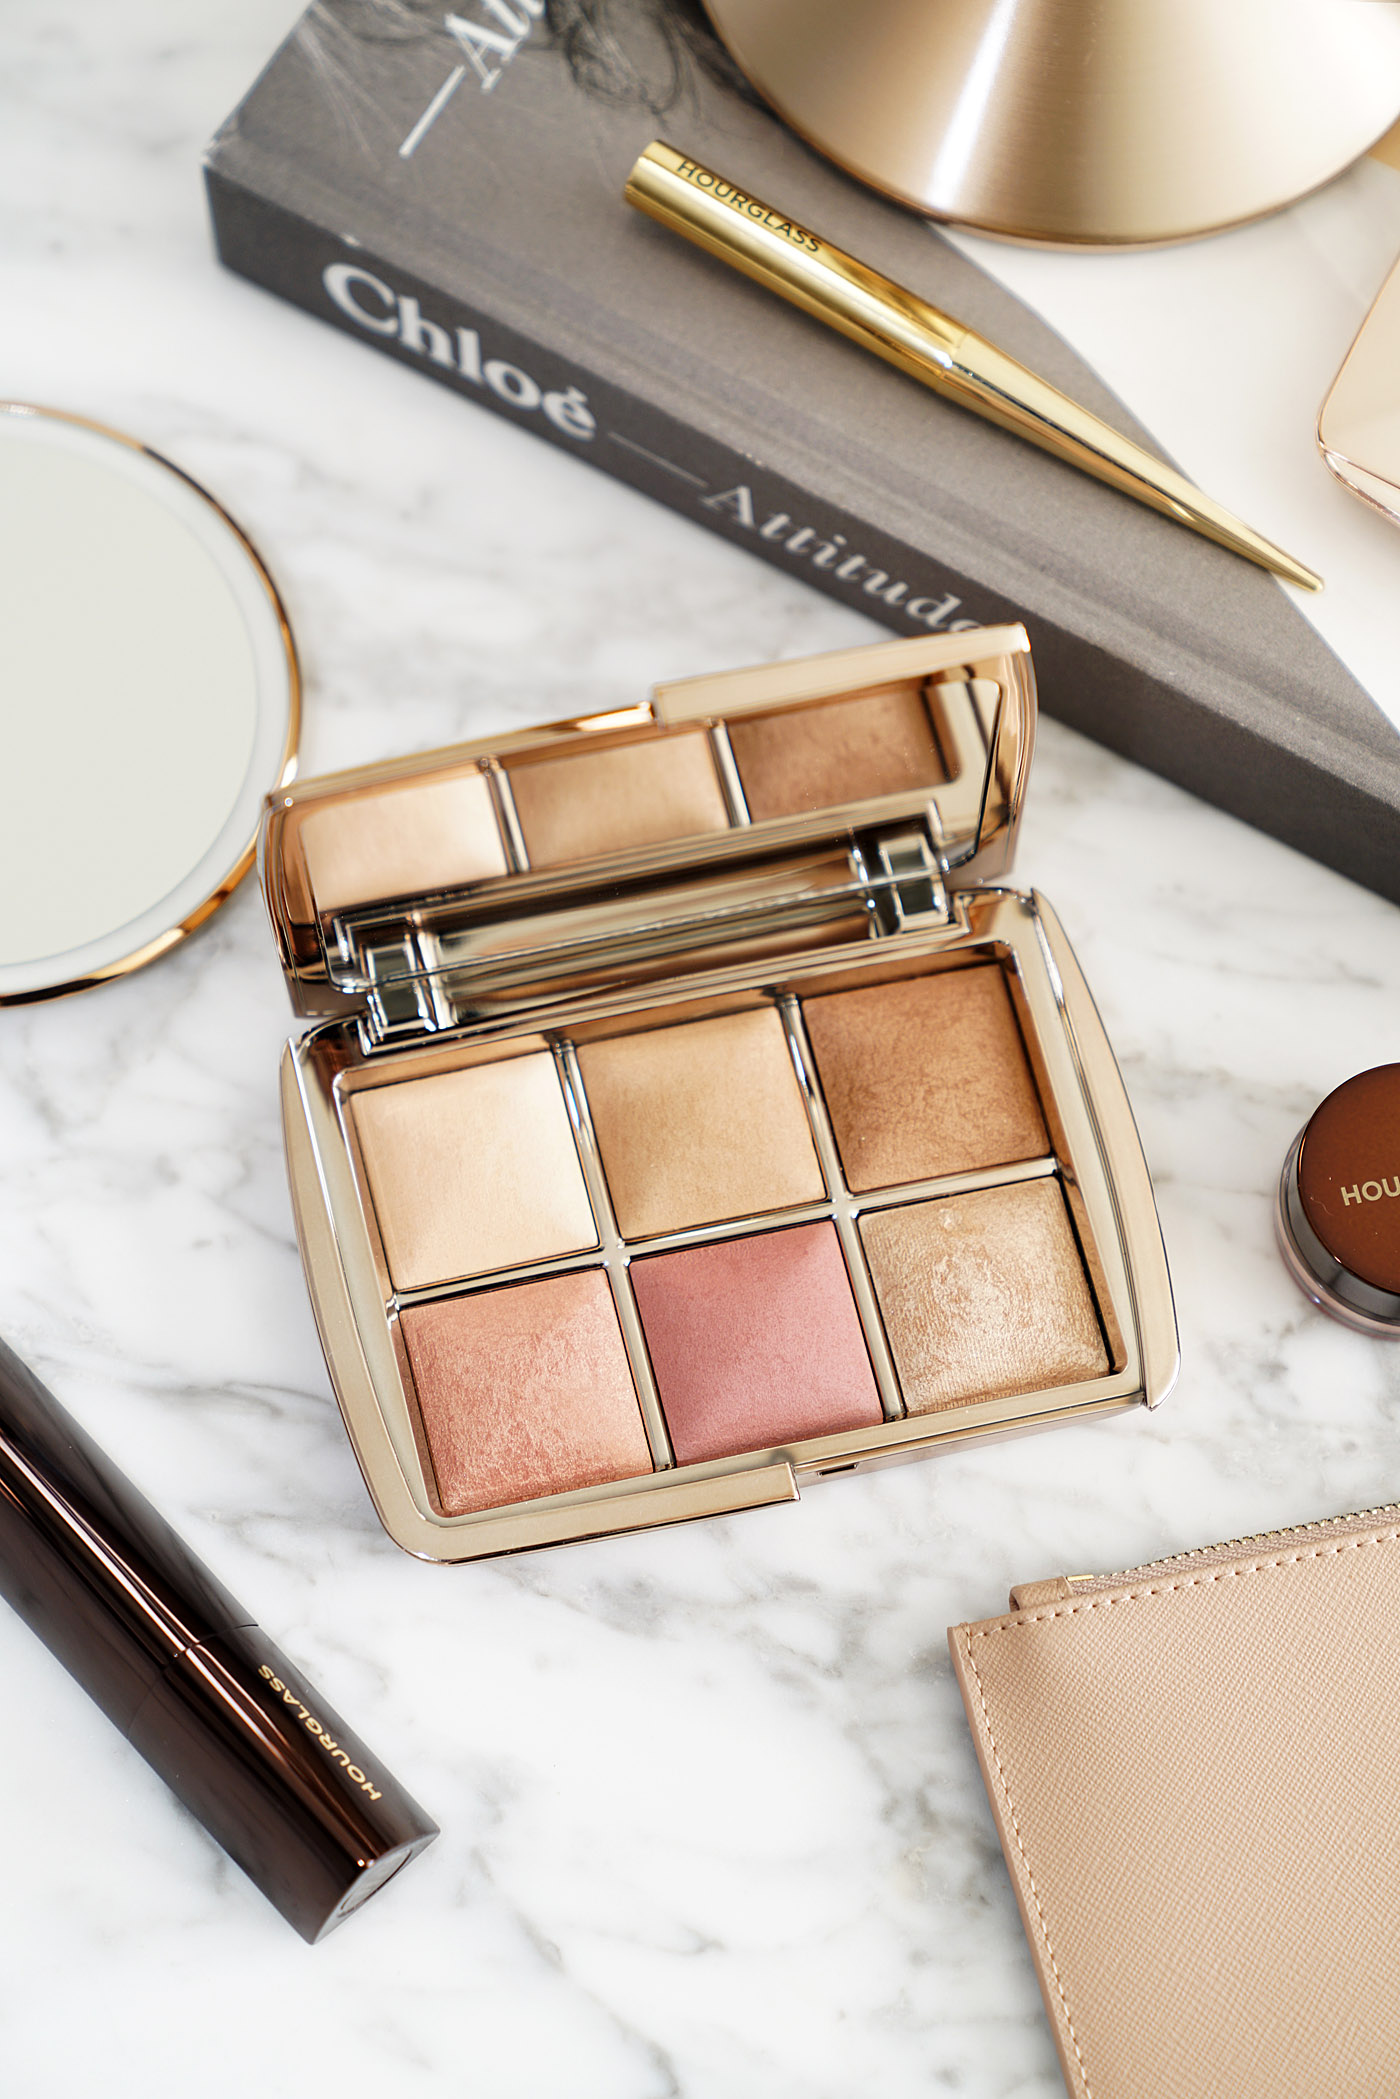 Hourglass Unlocked Ambient Lighting Palette Review